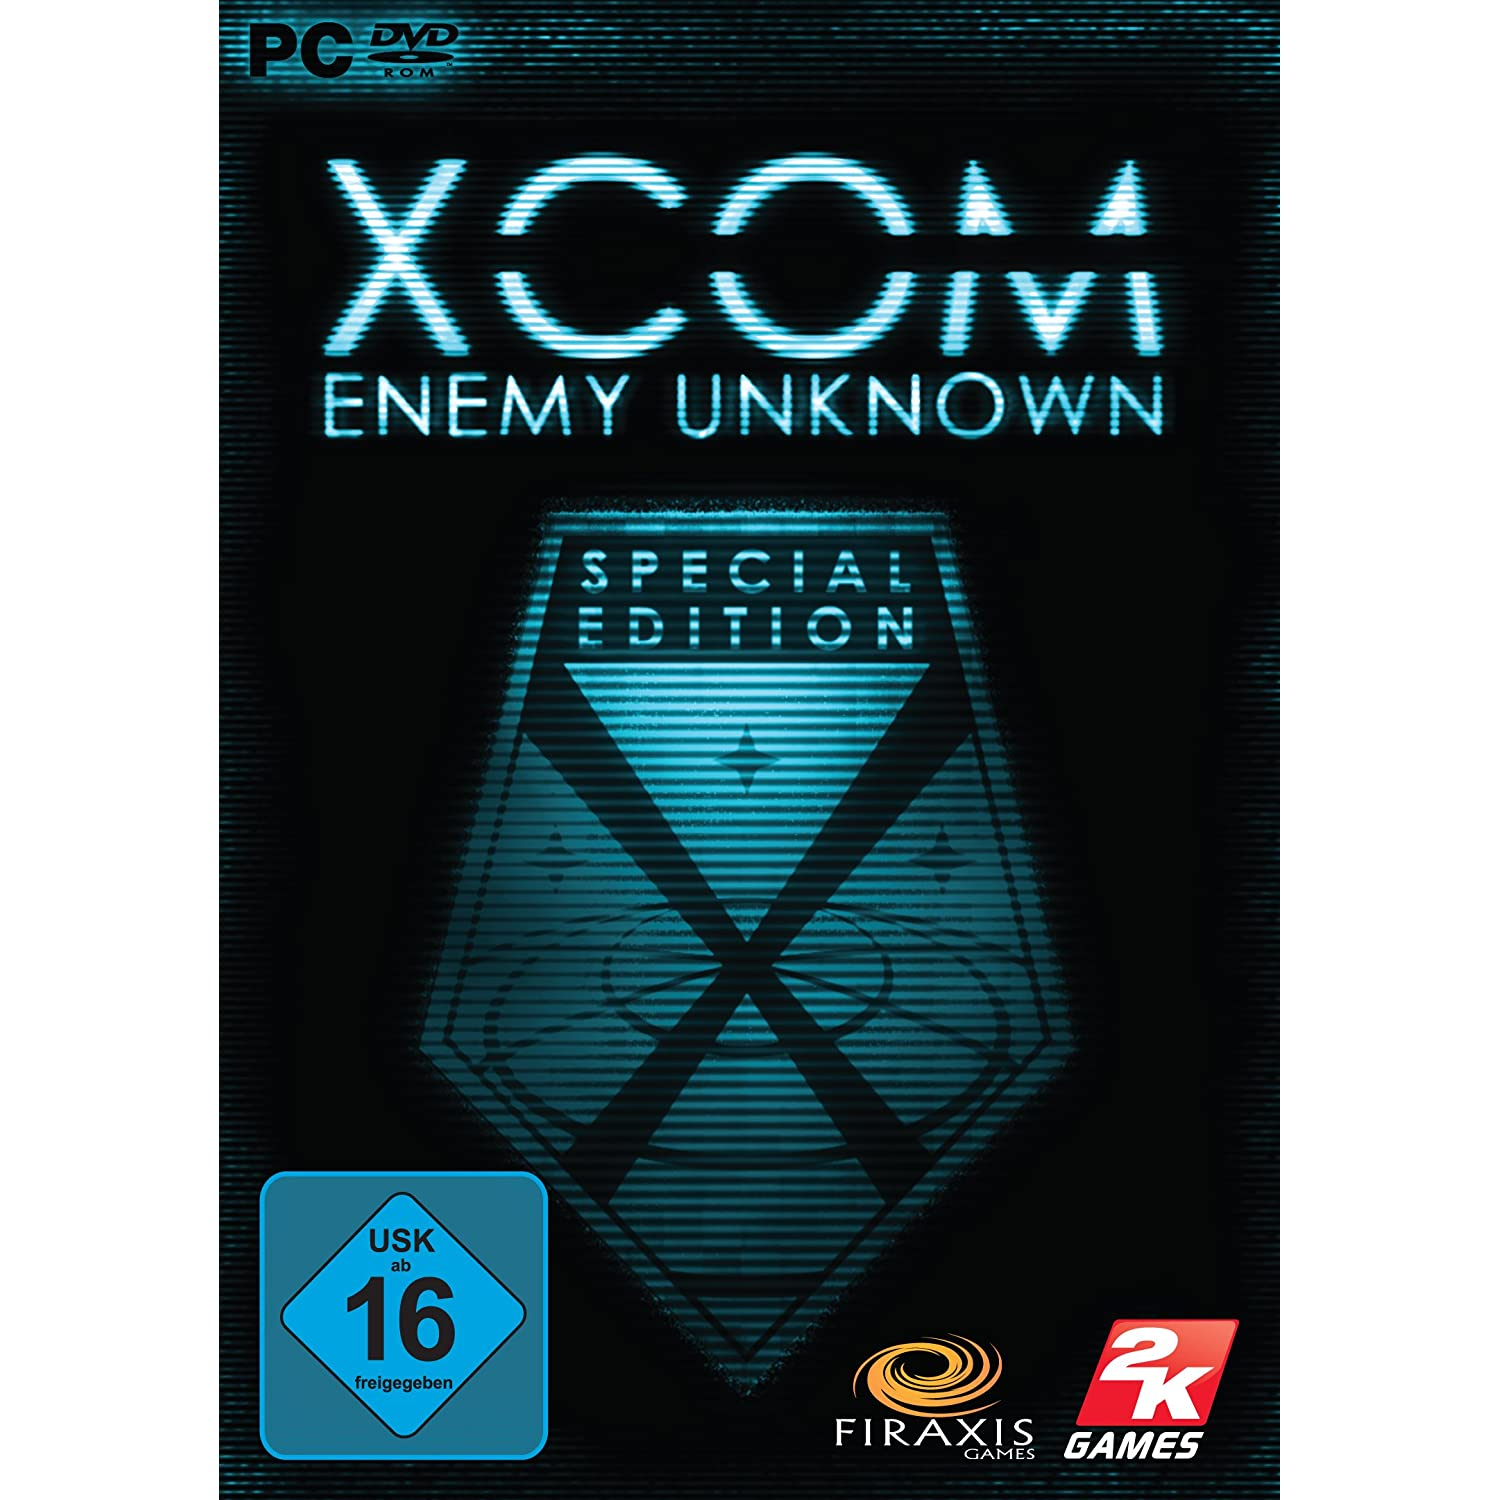 Xcom Badge The gallery for -->...